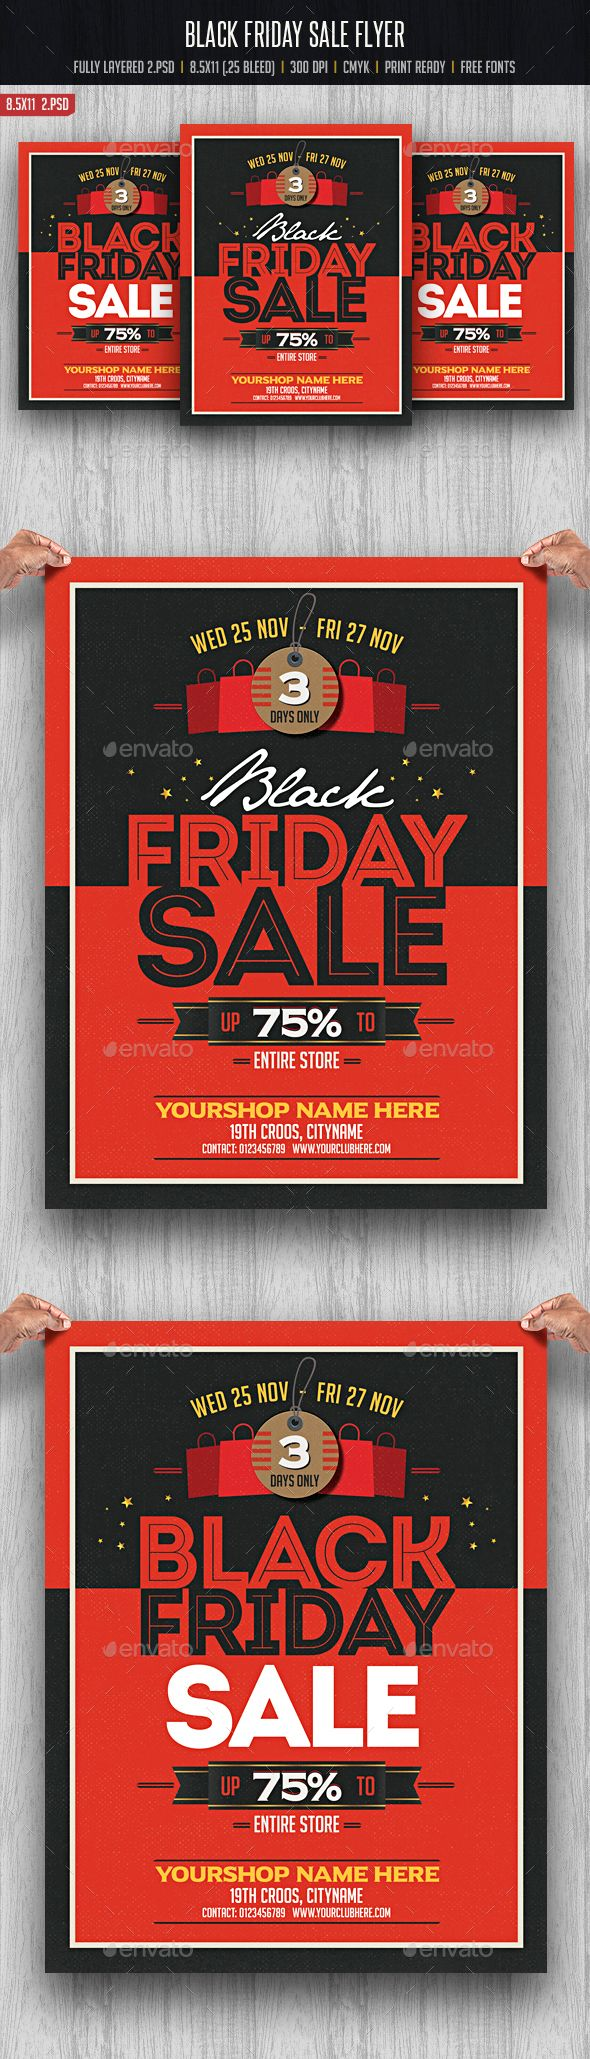 Black Friday Flyer Template PSD #design #promote Download: http://graphicriver.net/item/black-friday-flyer/13289231?ref=ksioks